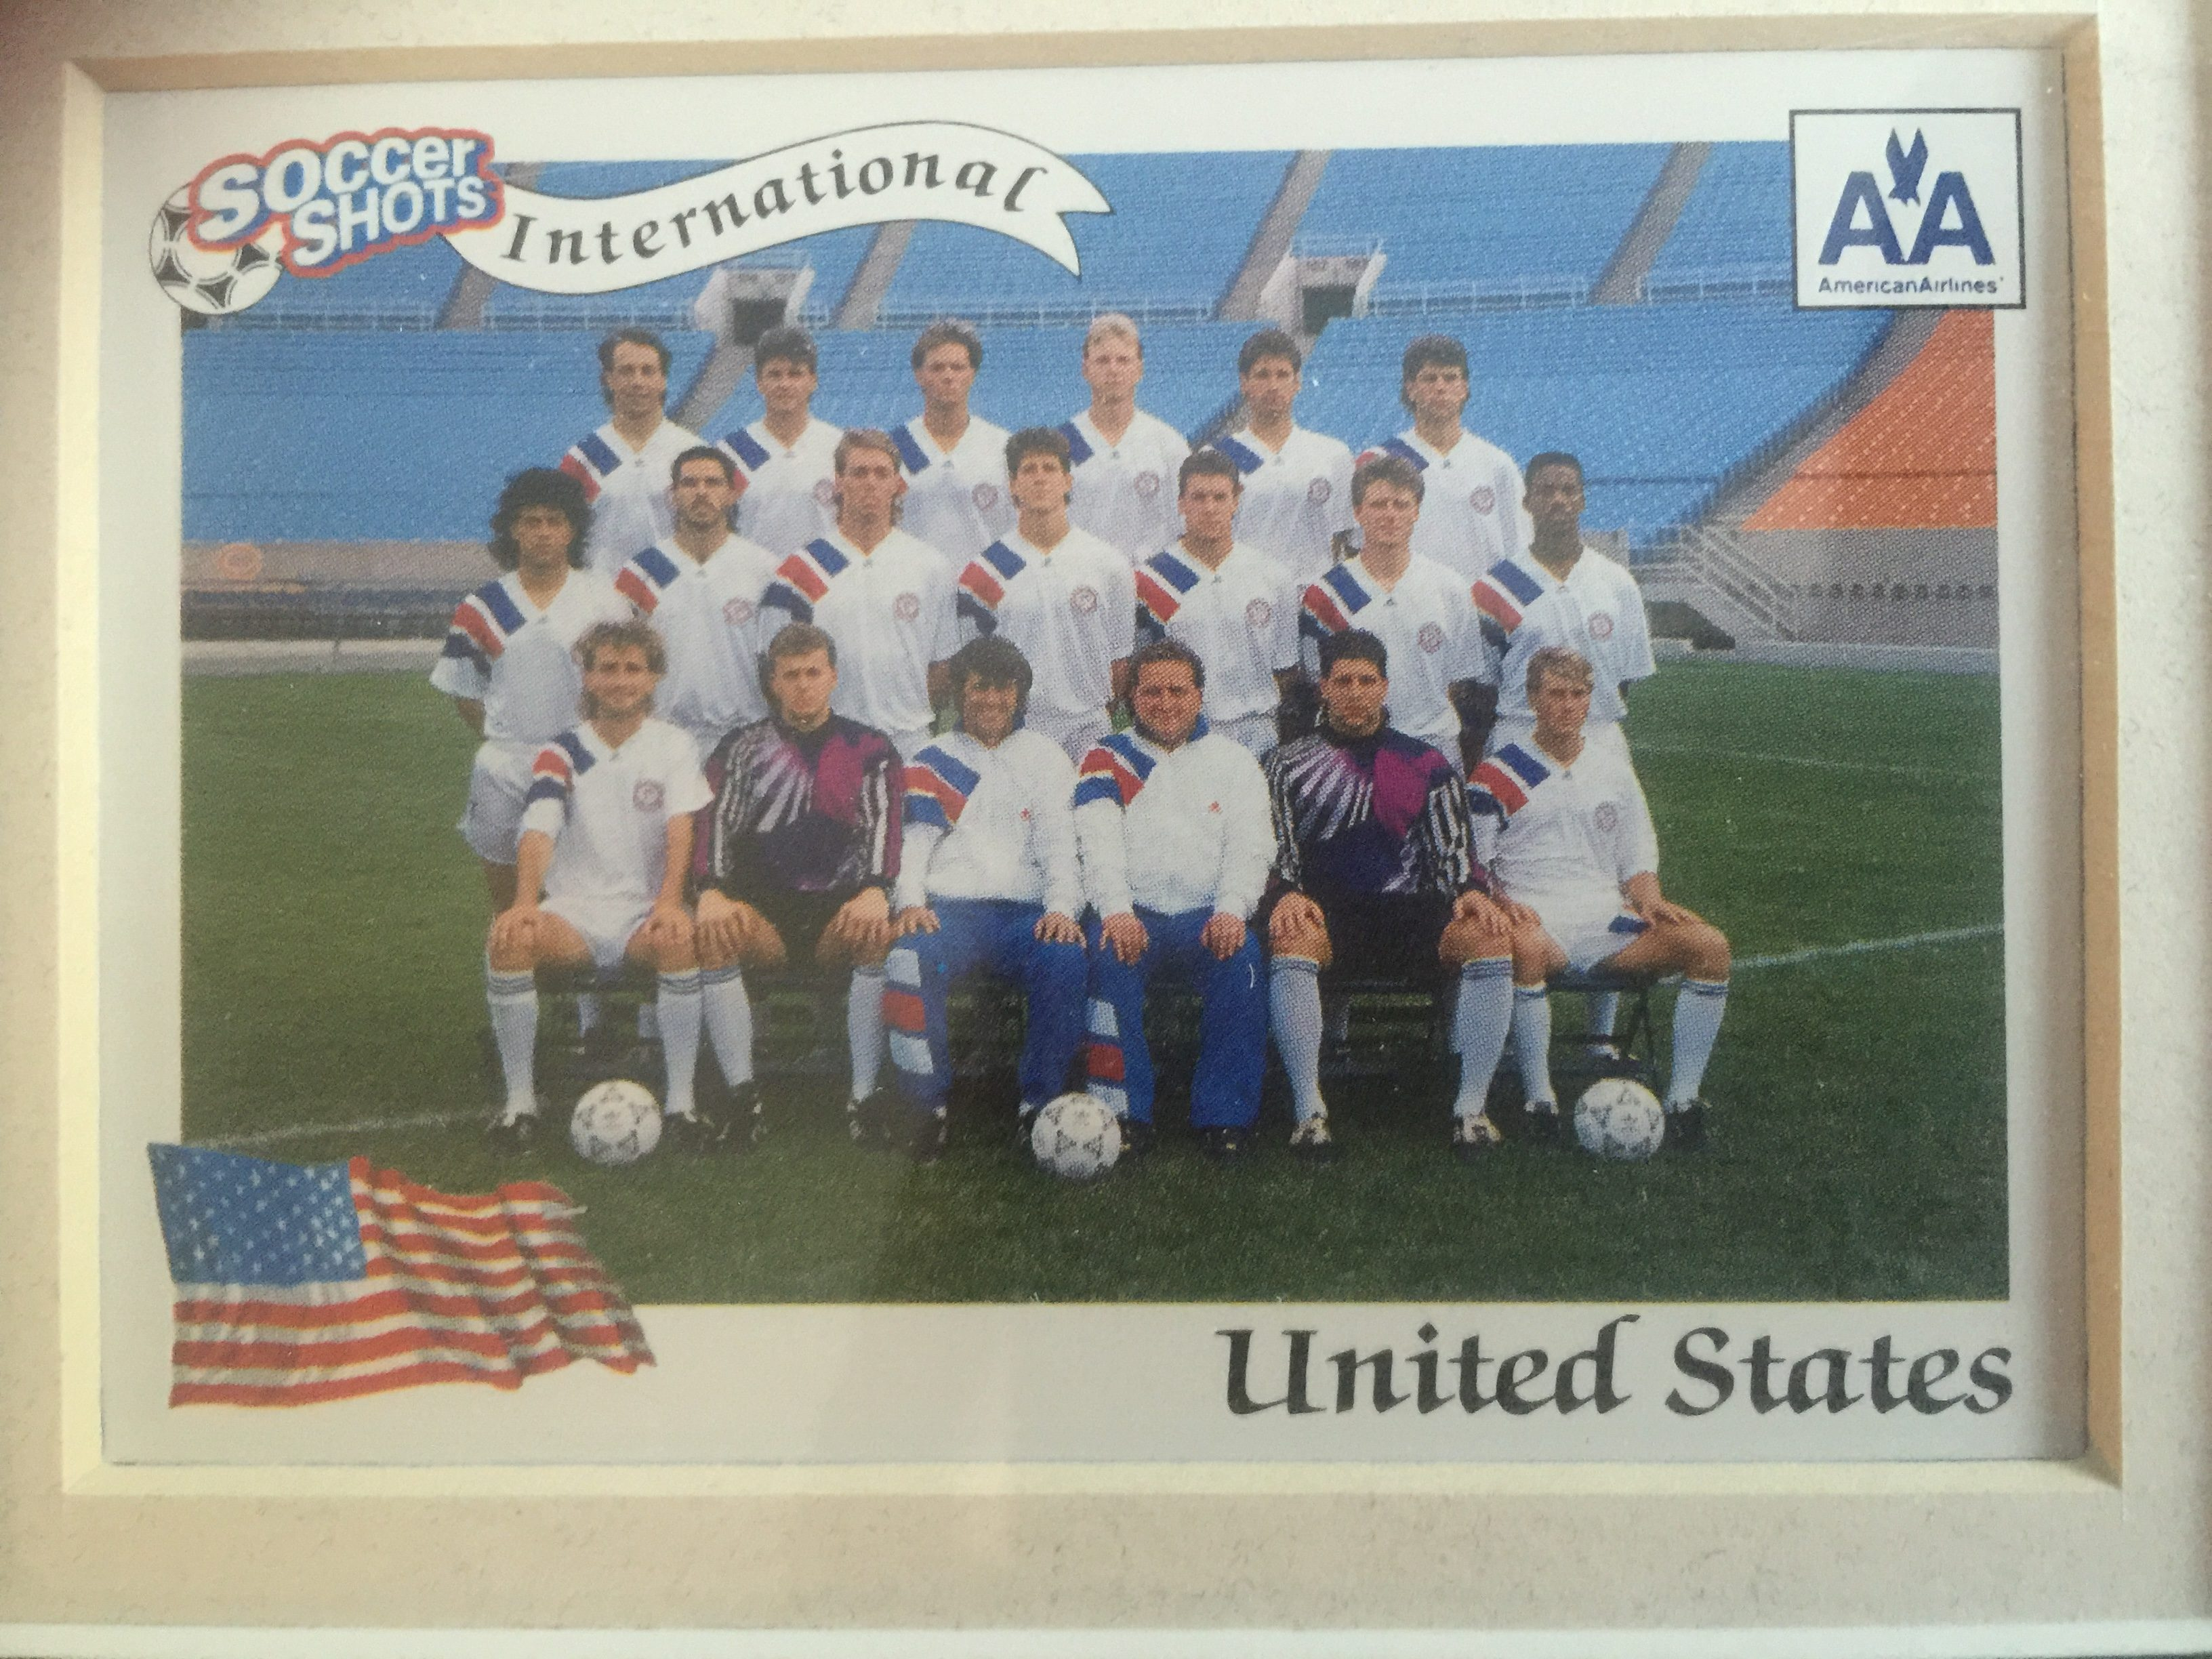 US National Team (Troy Snyder, Top Row, 2nd From Right)